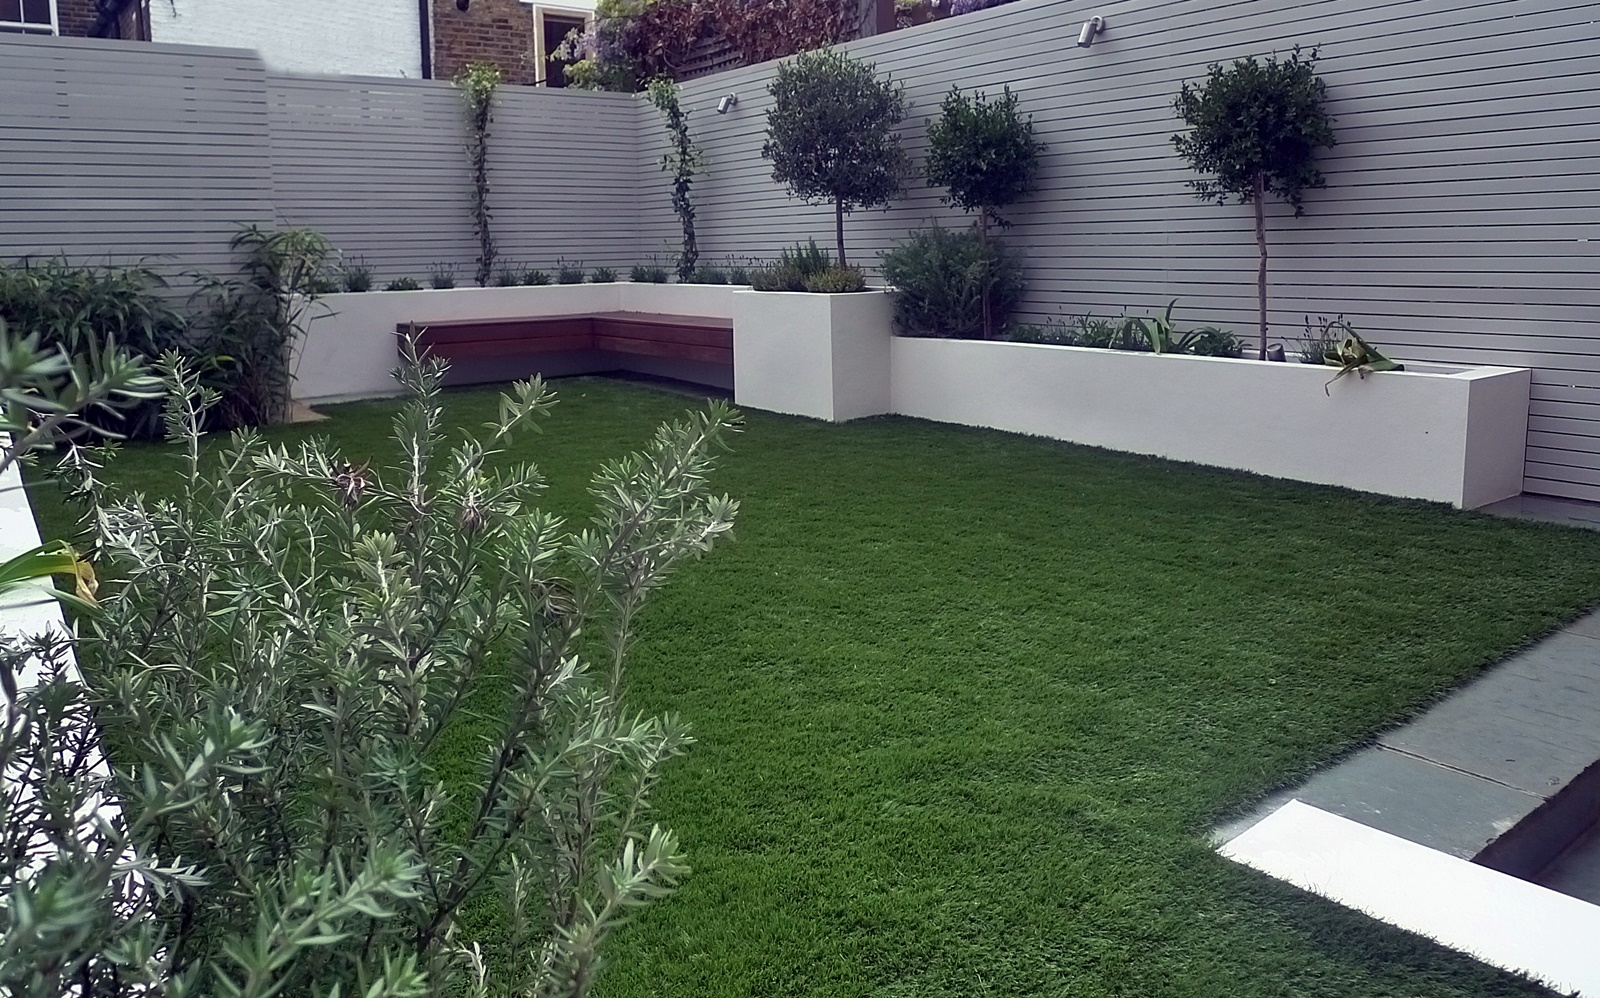 Artificial grass easi grass grey painted fences modern for Garden design ideas artificial grass